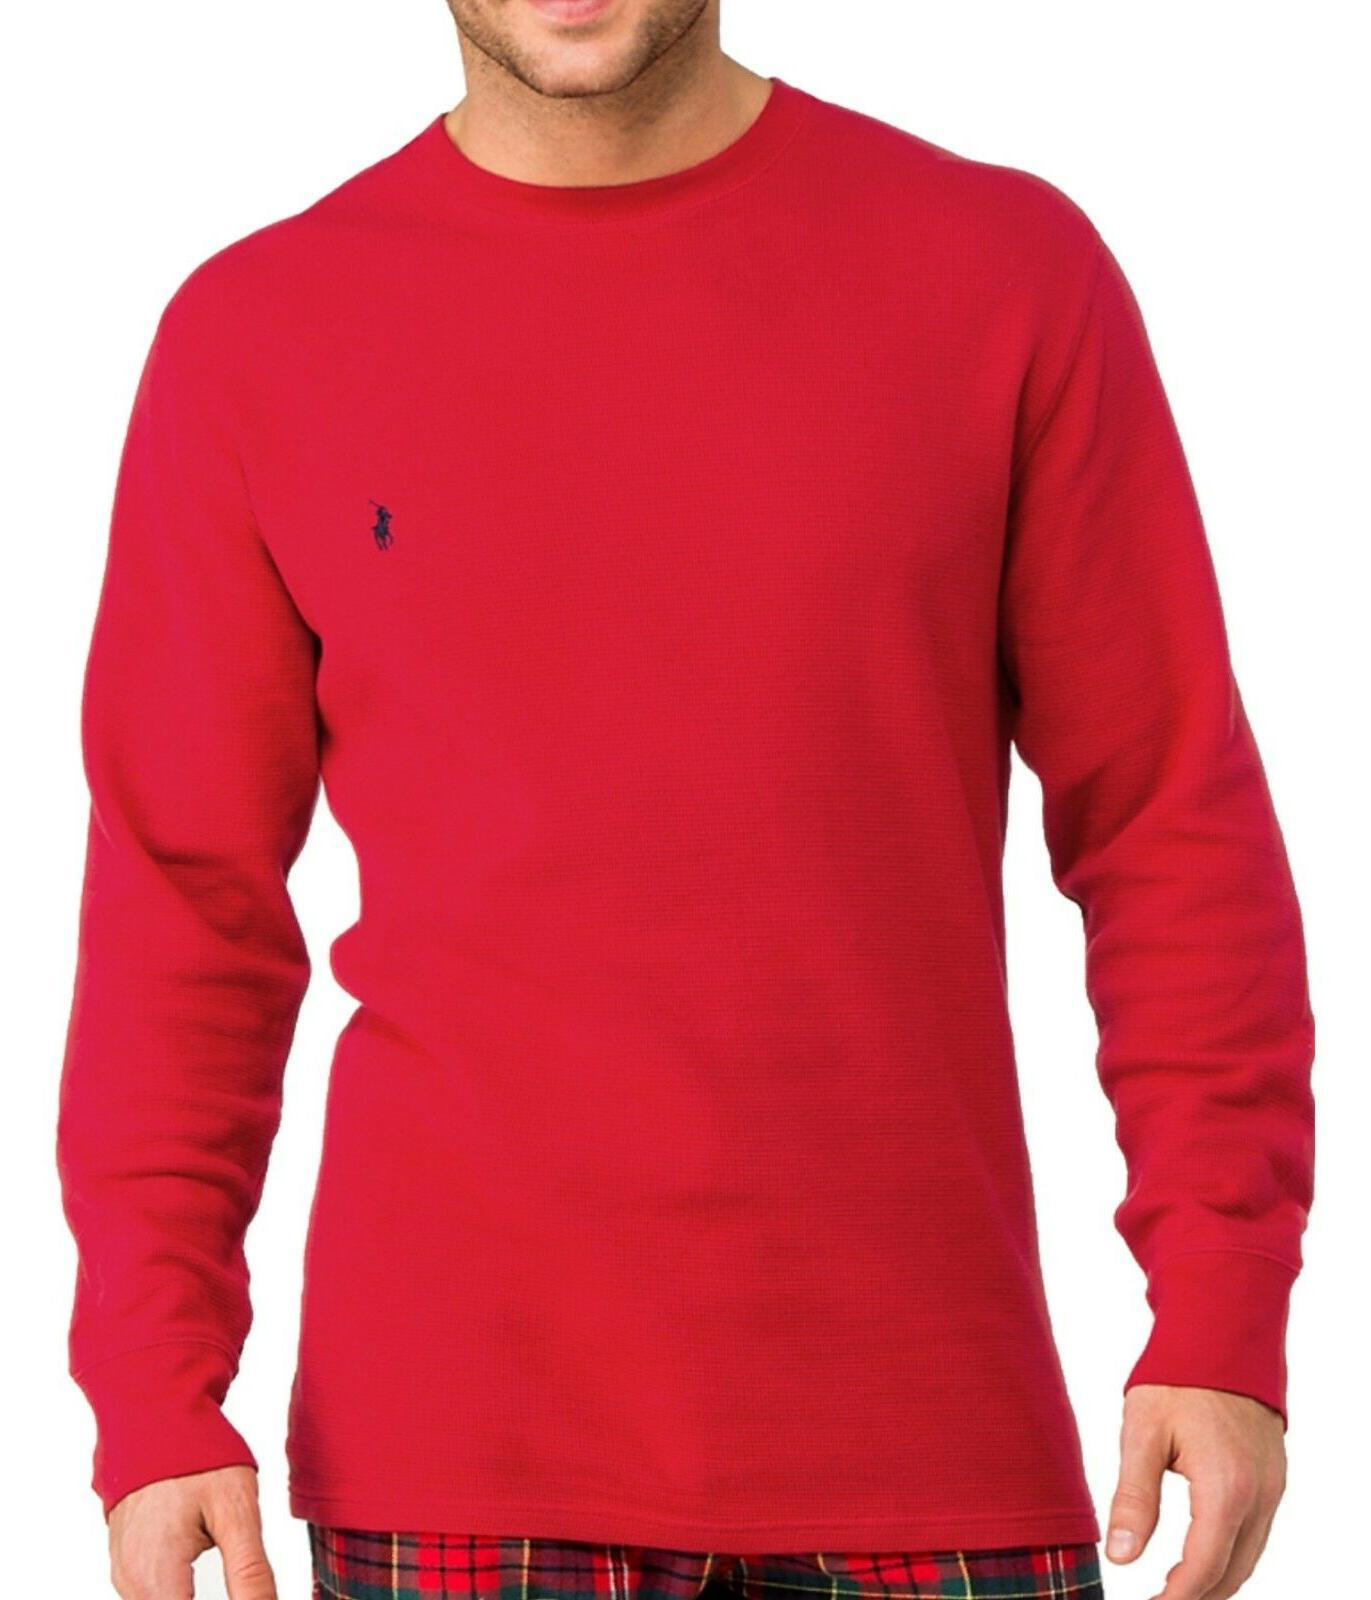 New Lauren Knit Thermal Long Sleeve - S -